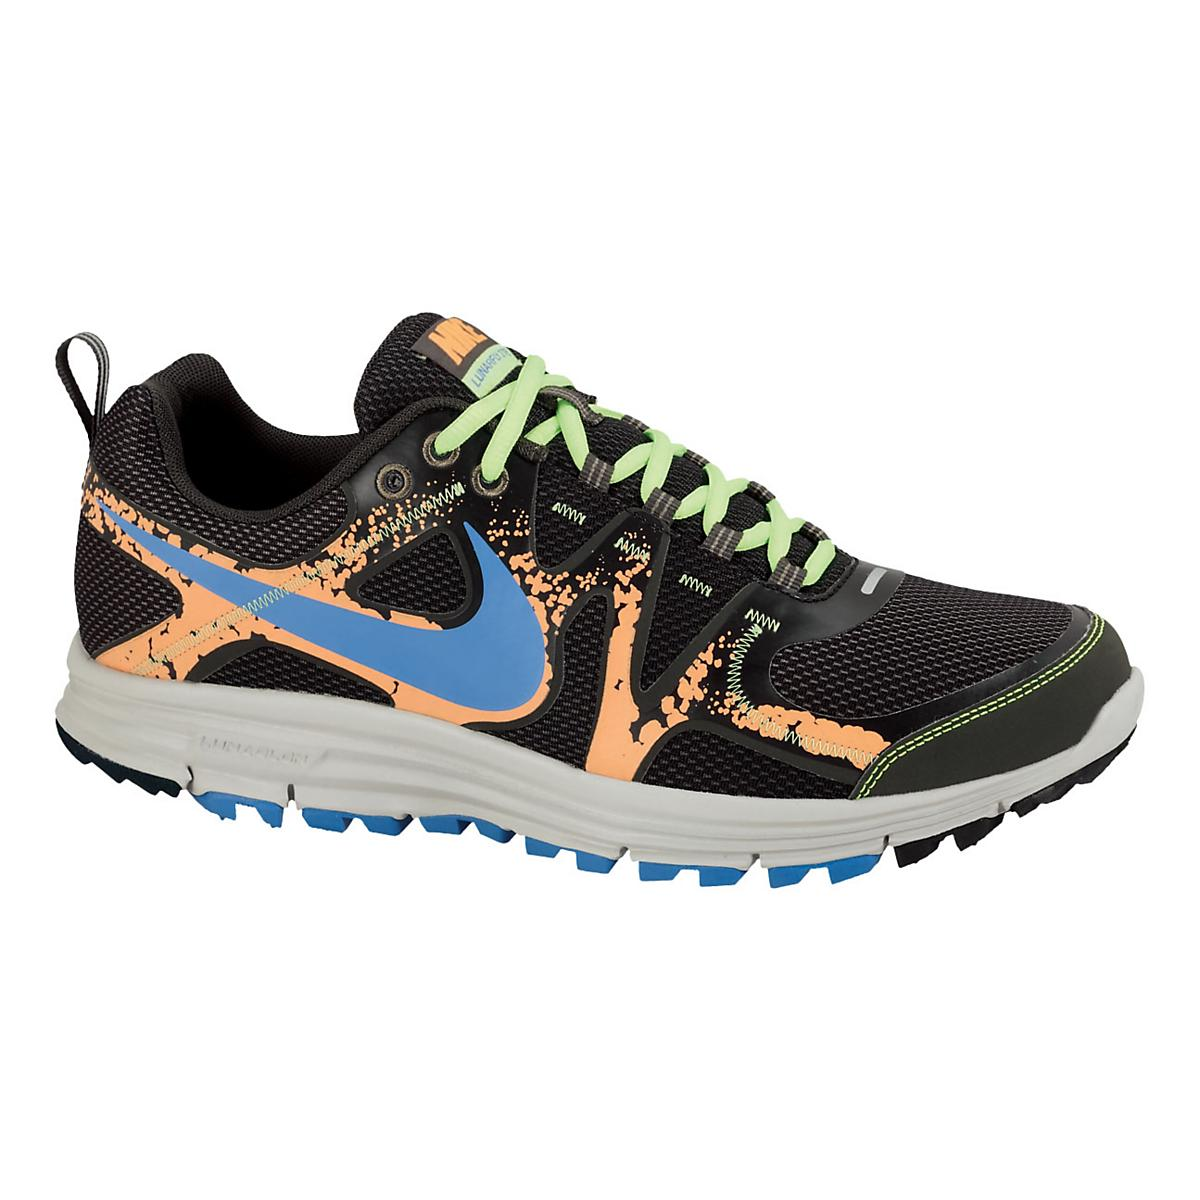 a76b59f0fe55 Mens Nike Lunarfly+ 3 Trail Trail Running Shoe at Road Runner Sports